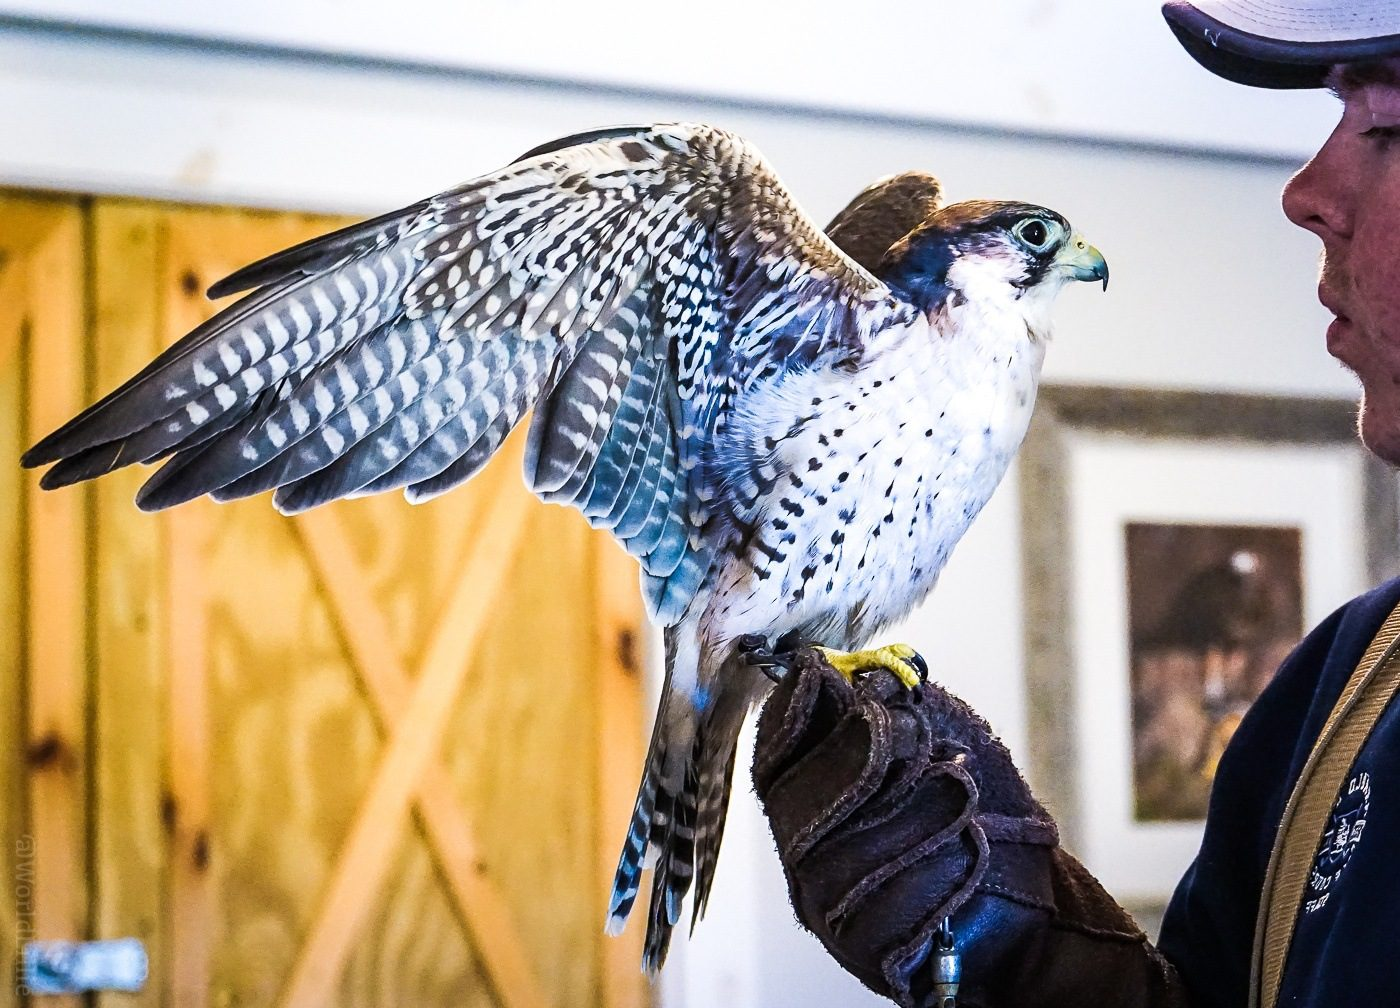 A Lanner Falcon at New England Falconry, Vermont.